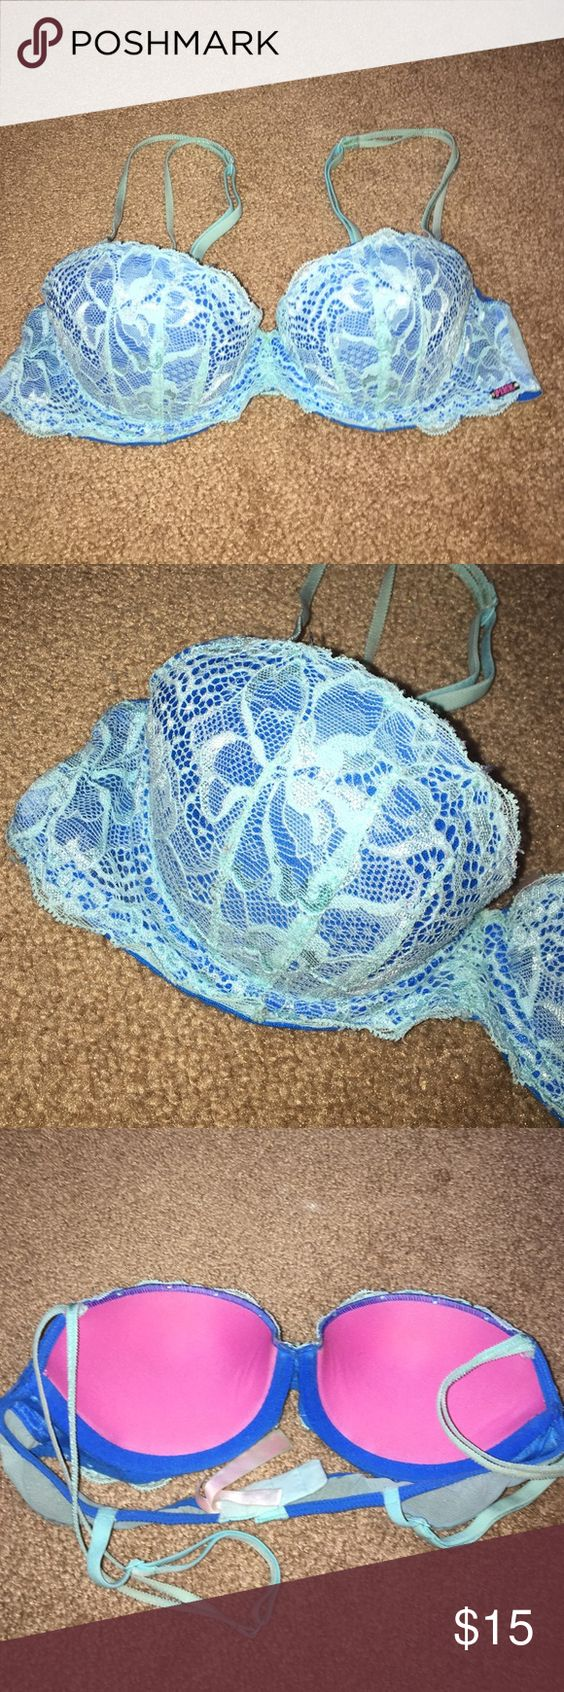 Victoria's Secret VS Pink The Date blue PushUp bra Sexy blue lacy push up bra from VS Pink in size 32A. Excellent condition and padding still in tact. Any questions feel free to ask in the comment section. Thank you! Victoria's Secret Intimates & Sleepwear Bras